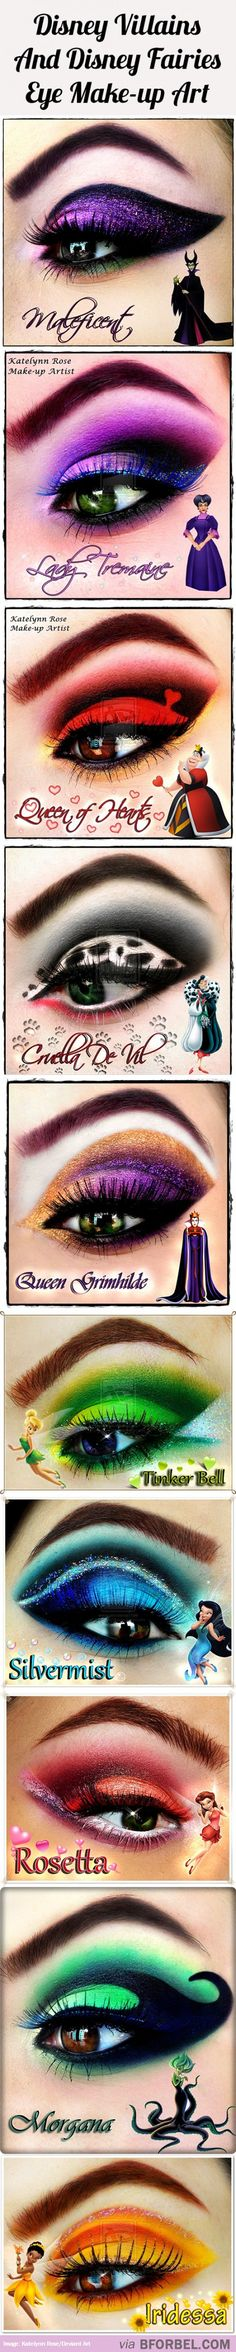 10 Disney Villains And Fairies Inspired Beautiful Eye Makeup…LOVE Silvermist and Morgana